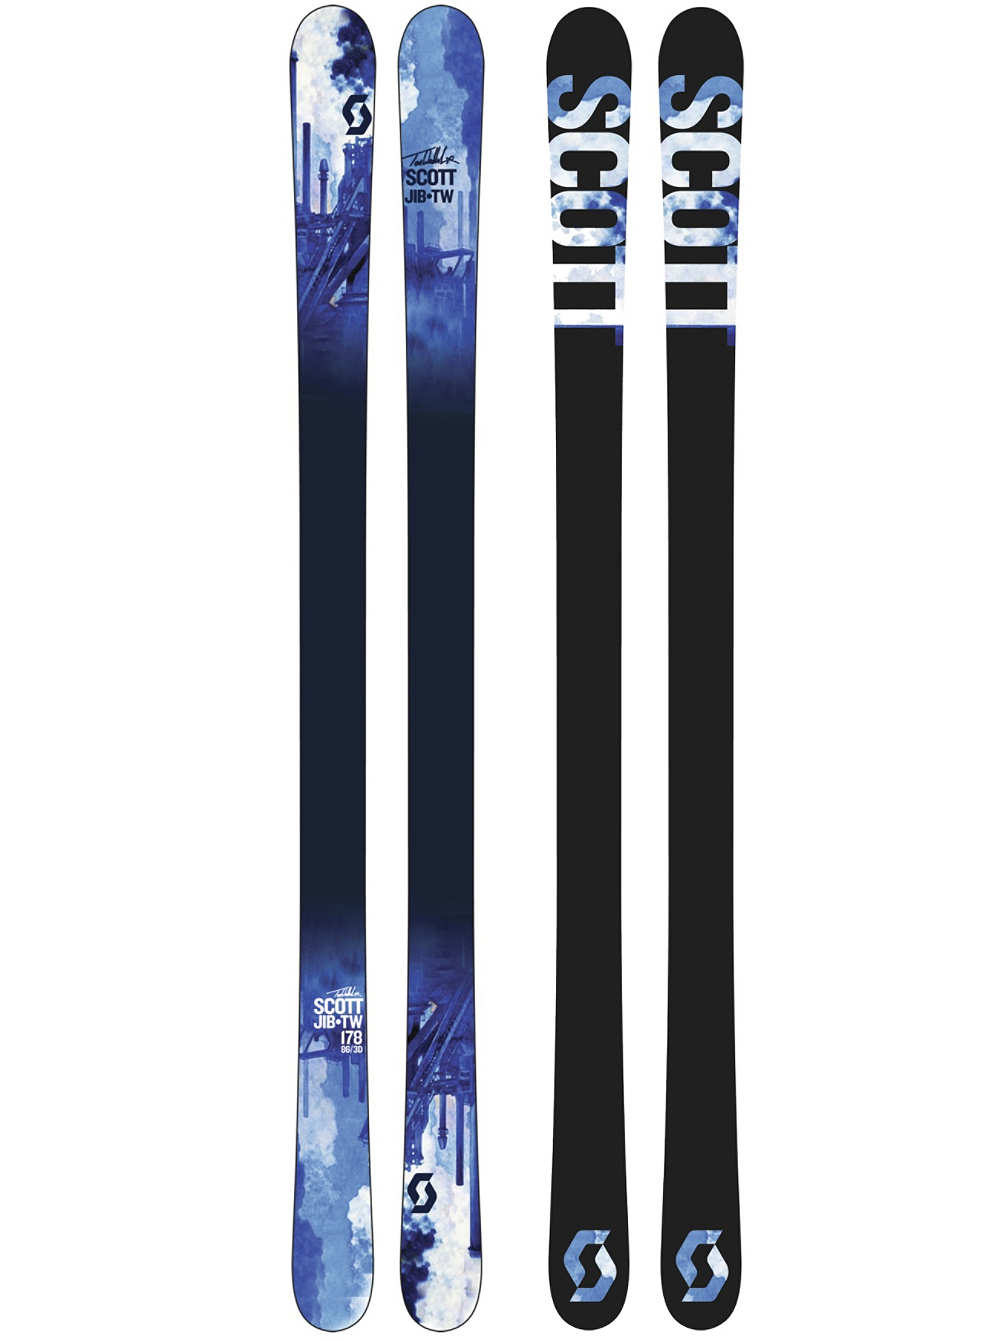 Scott Jib TW Park and Pipe Skis